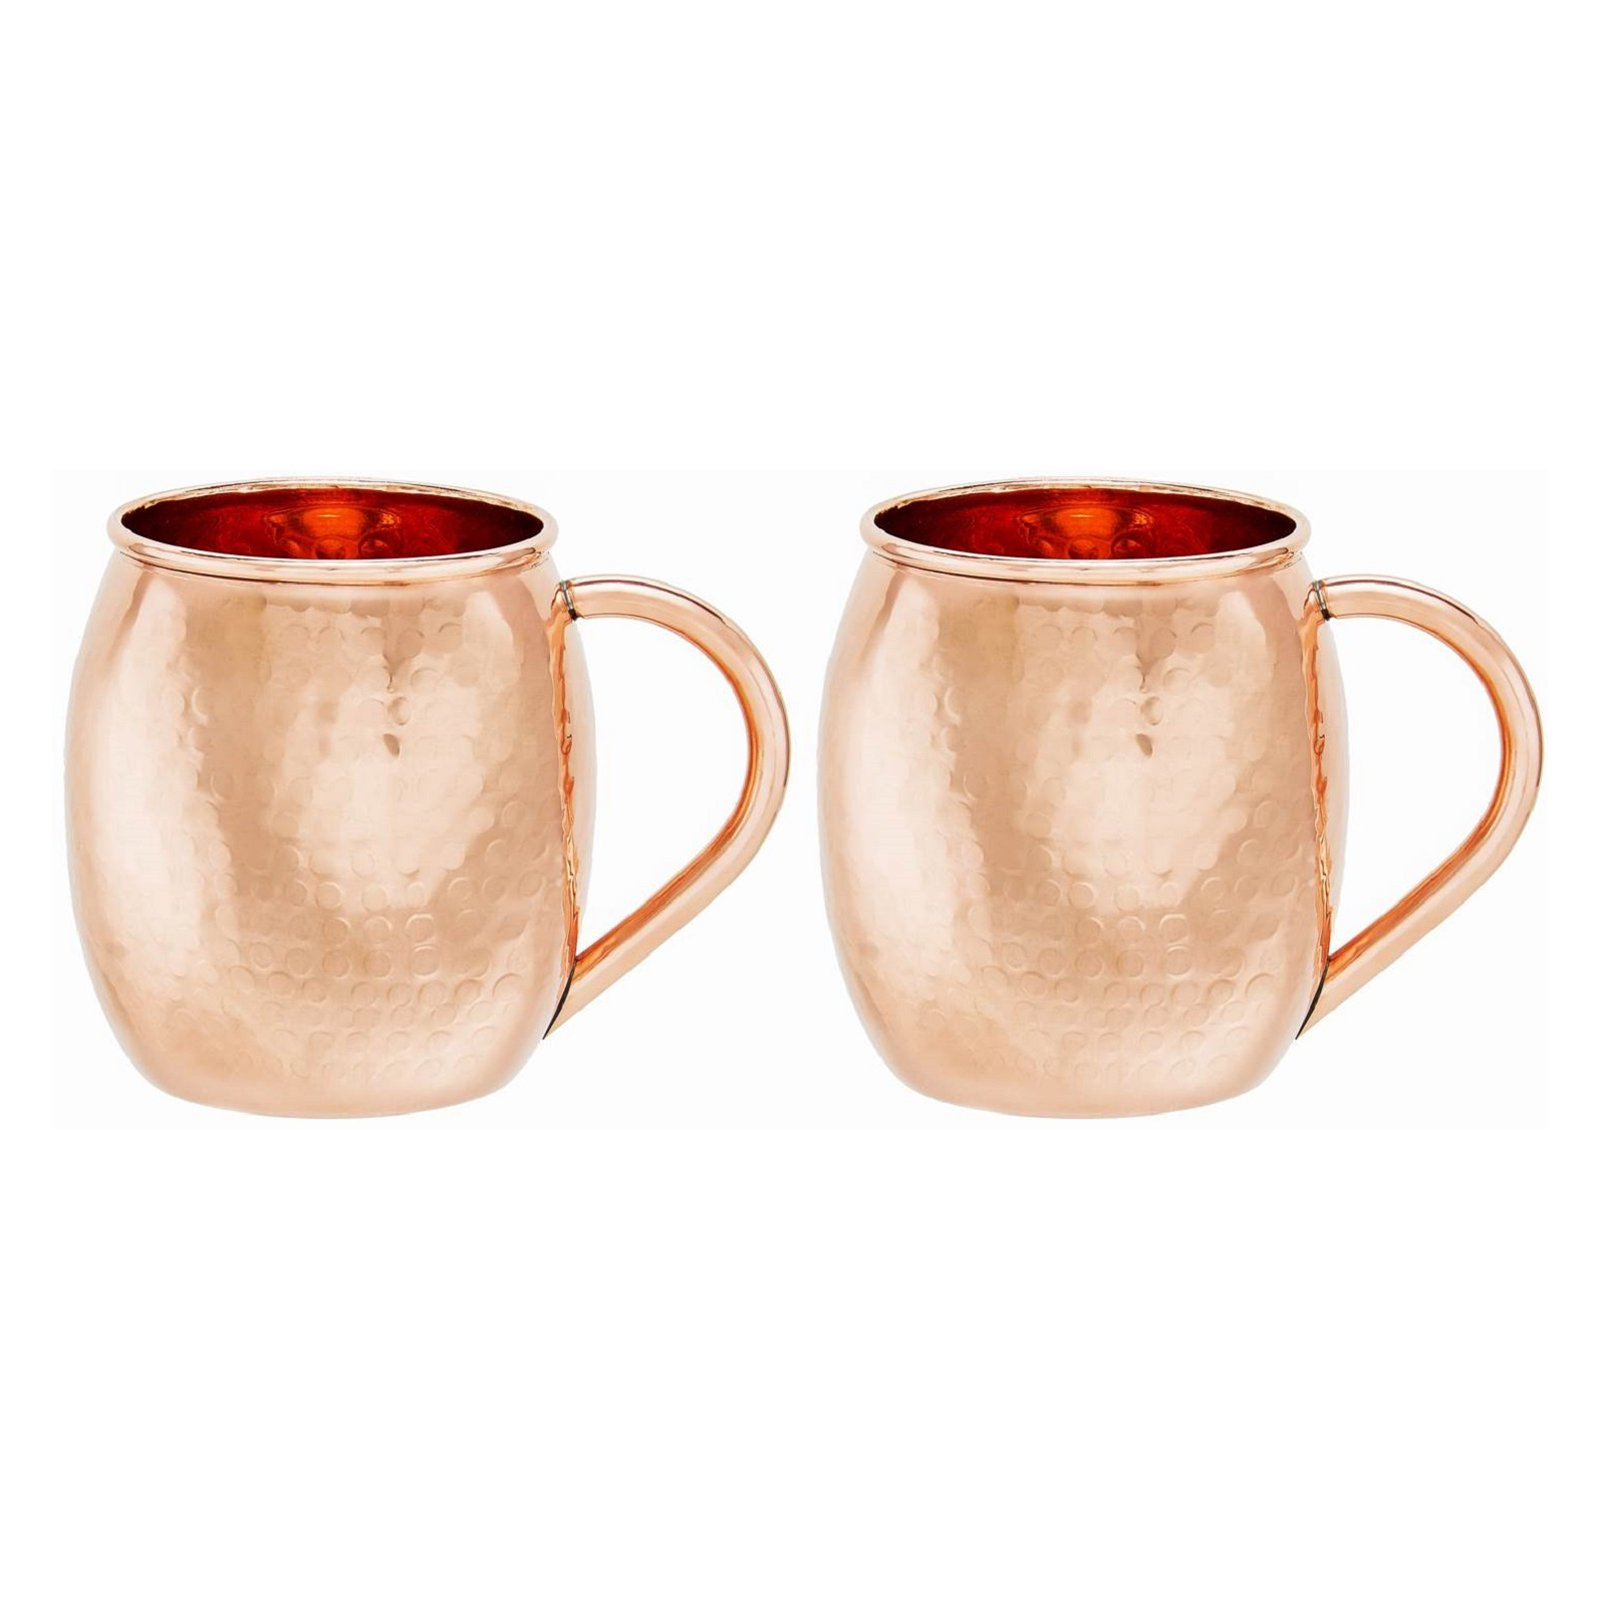 Old Dutch International Hammered Copper Moscow Mule Mugs - Set of 2